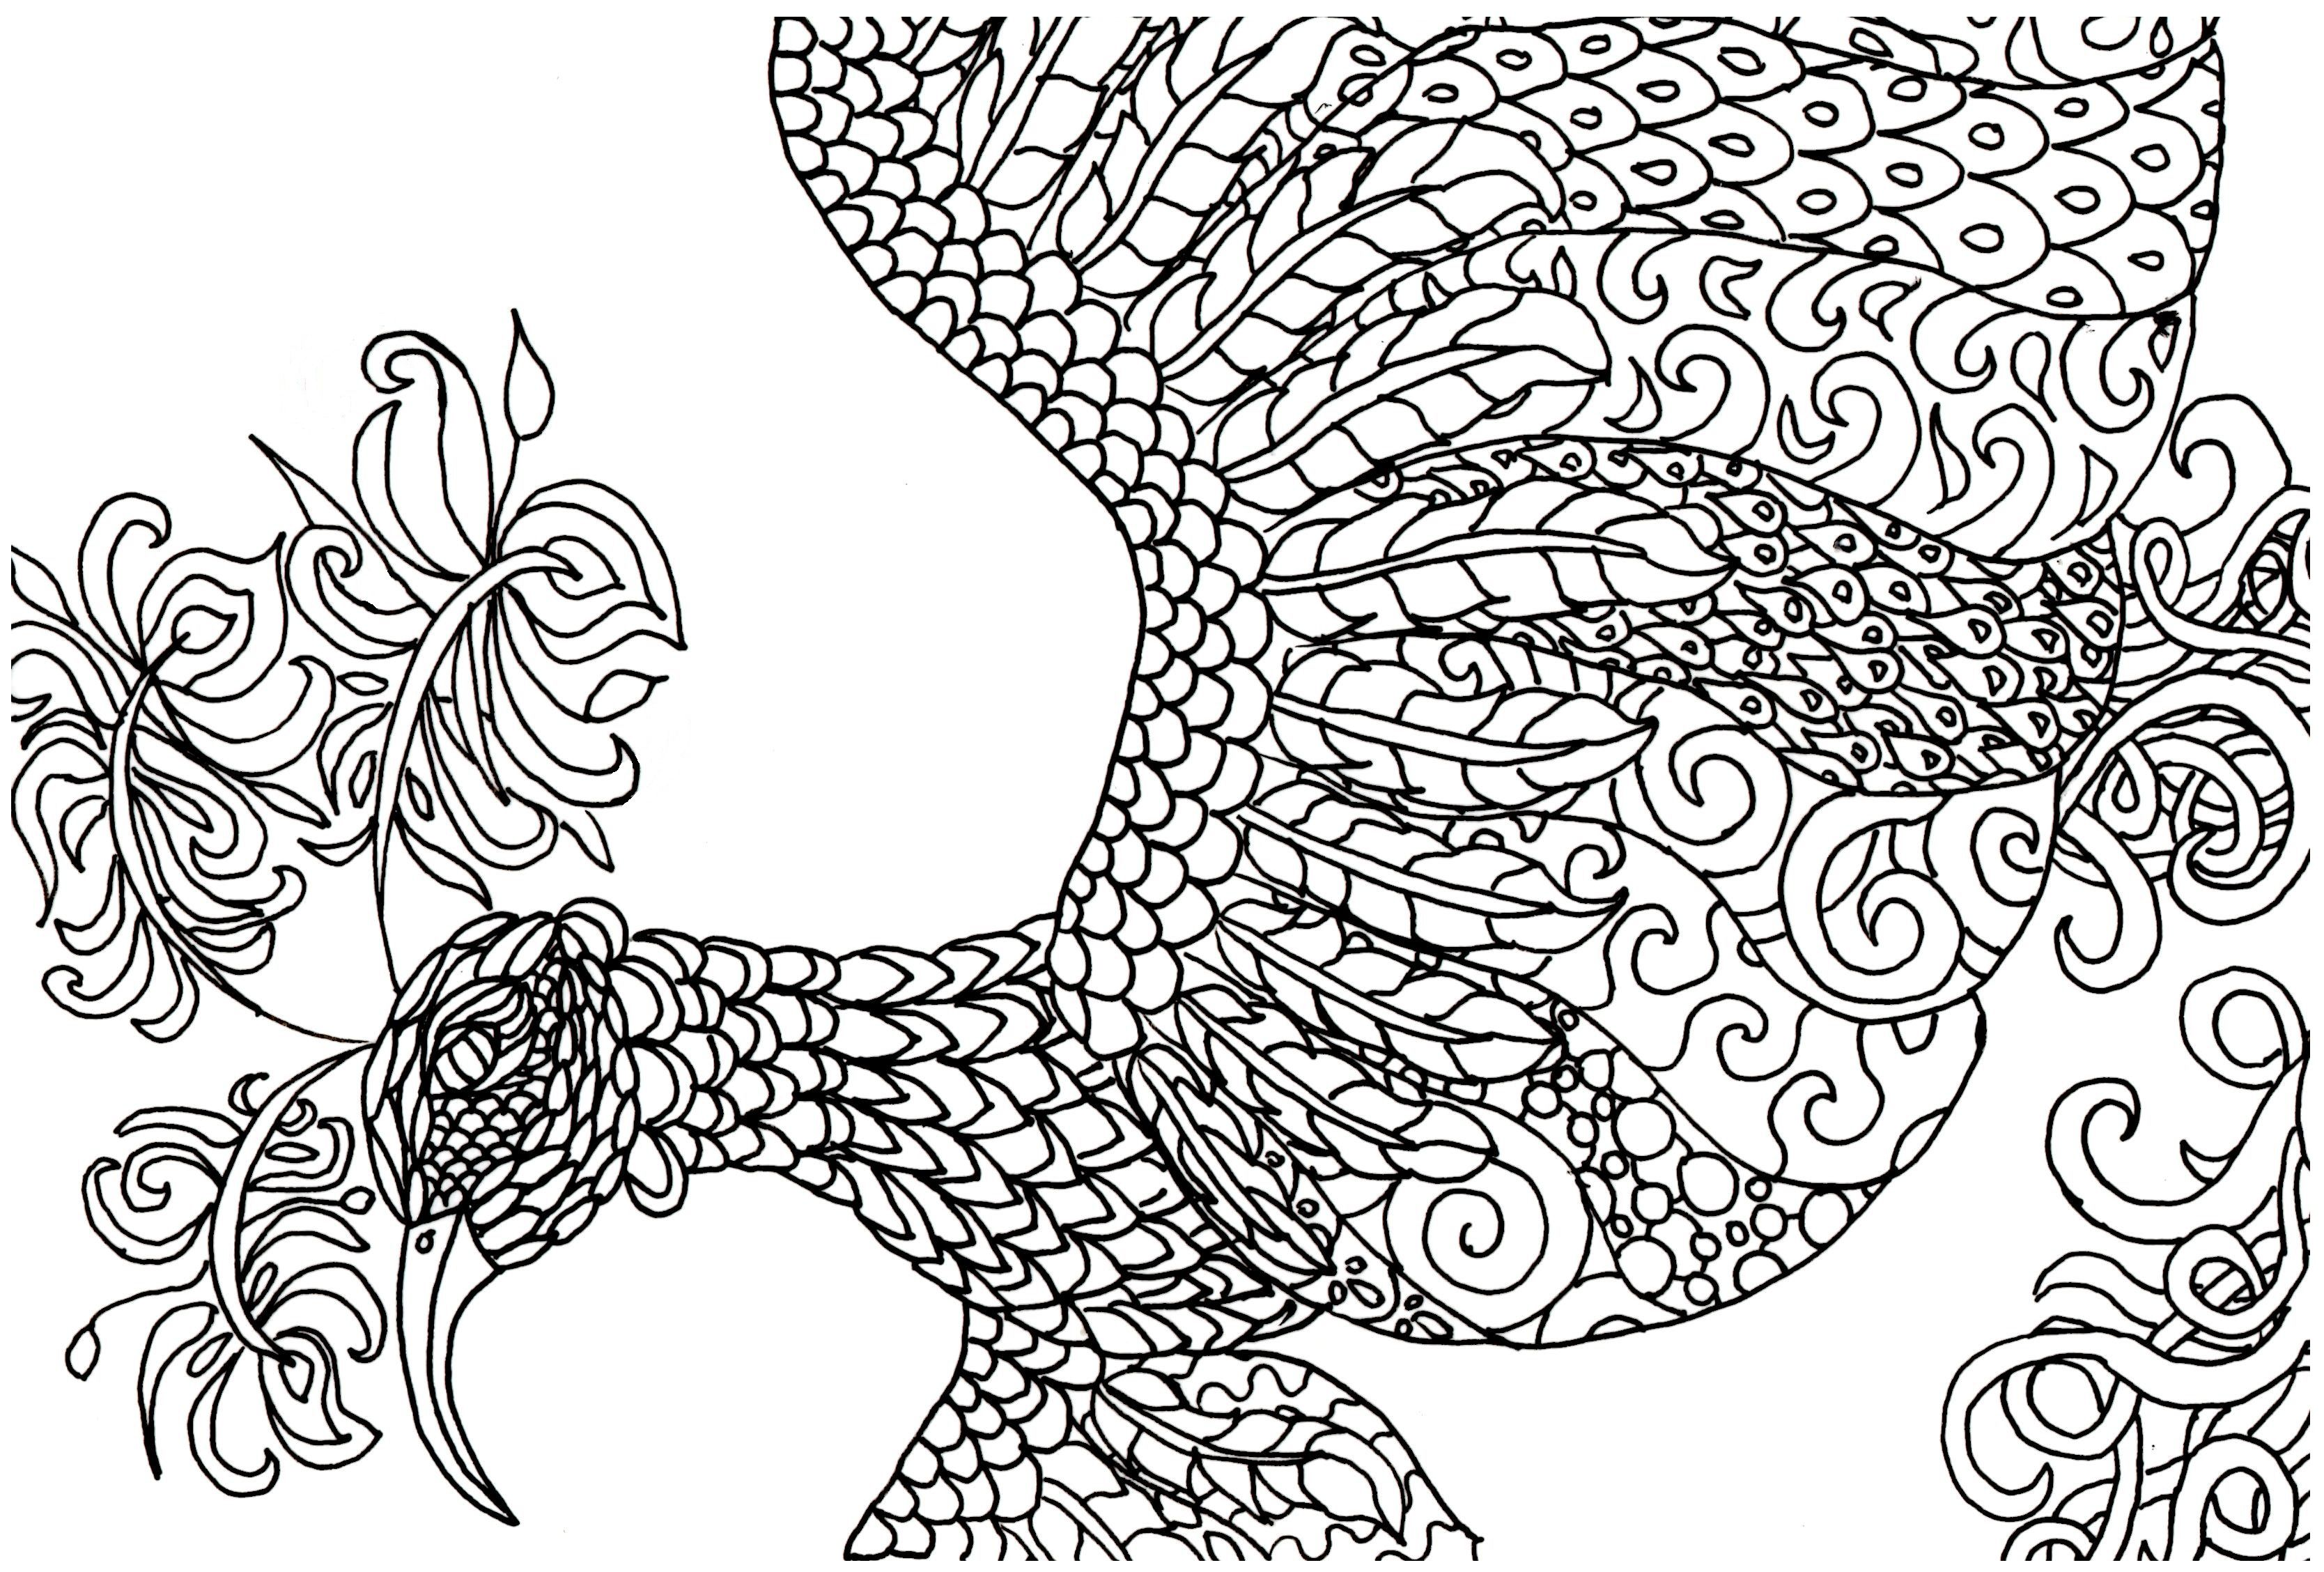 Science All Images Coloring Book Pages For